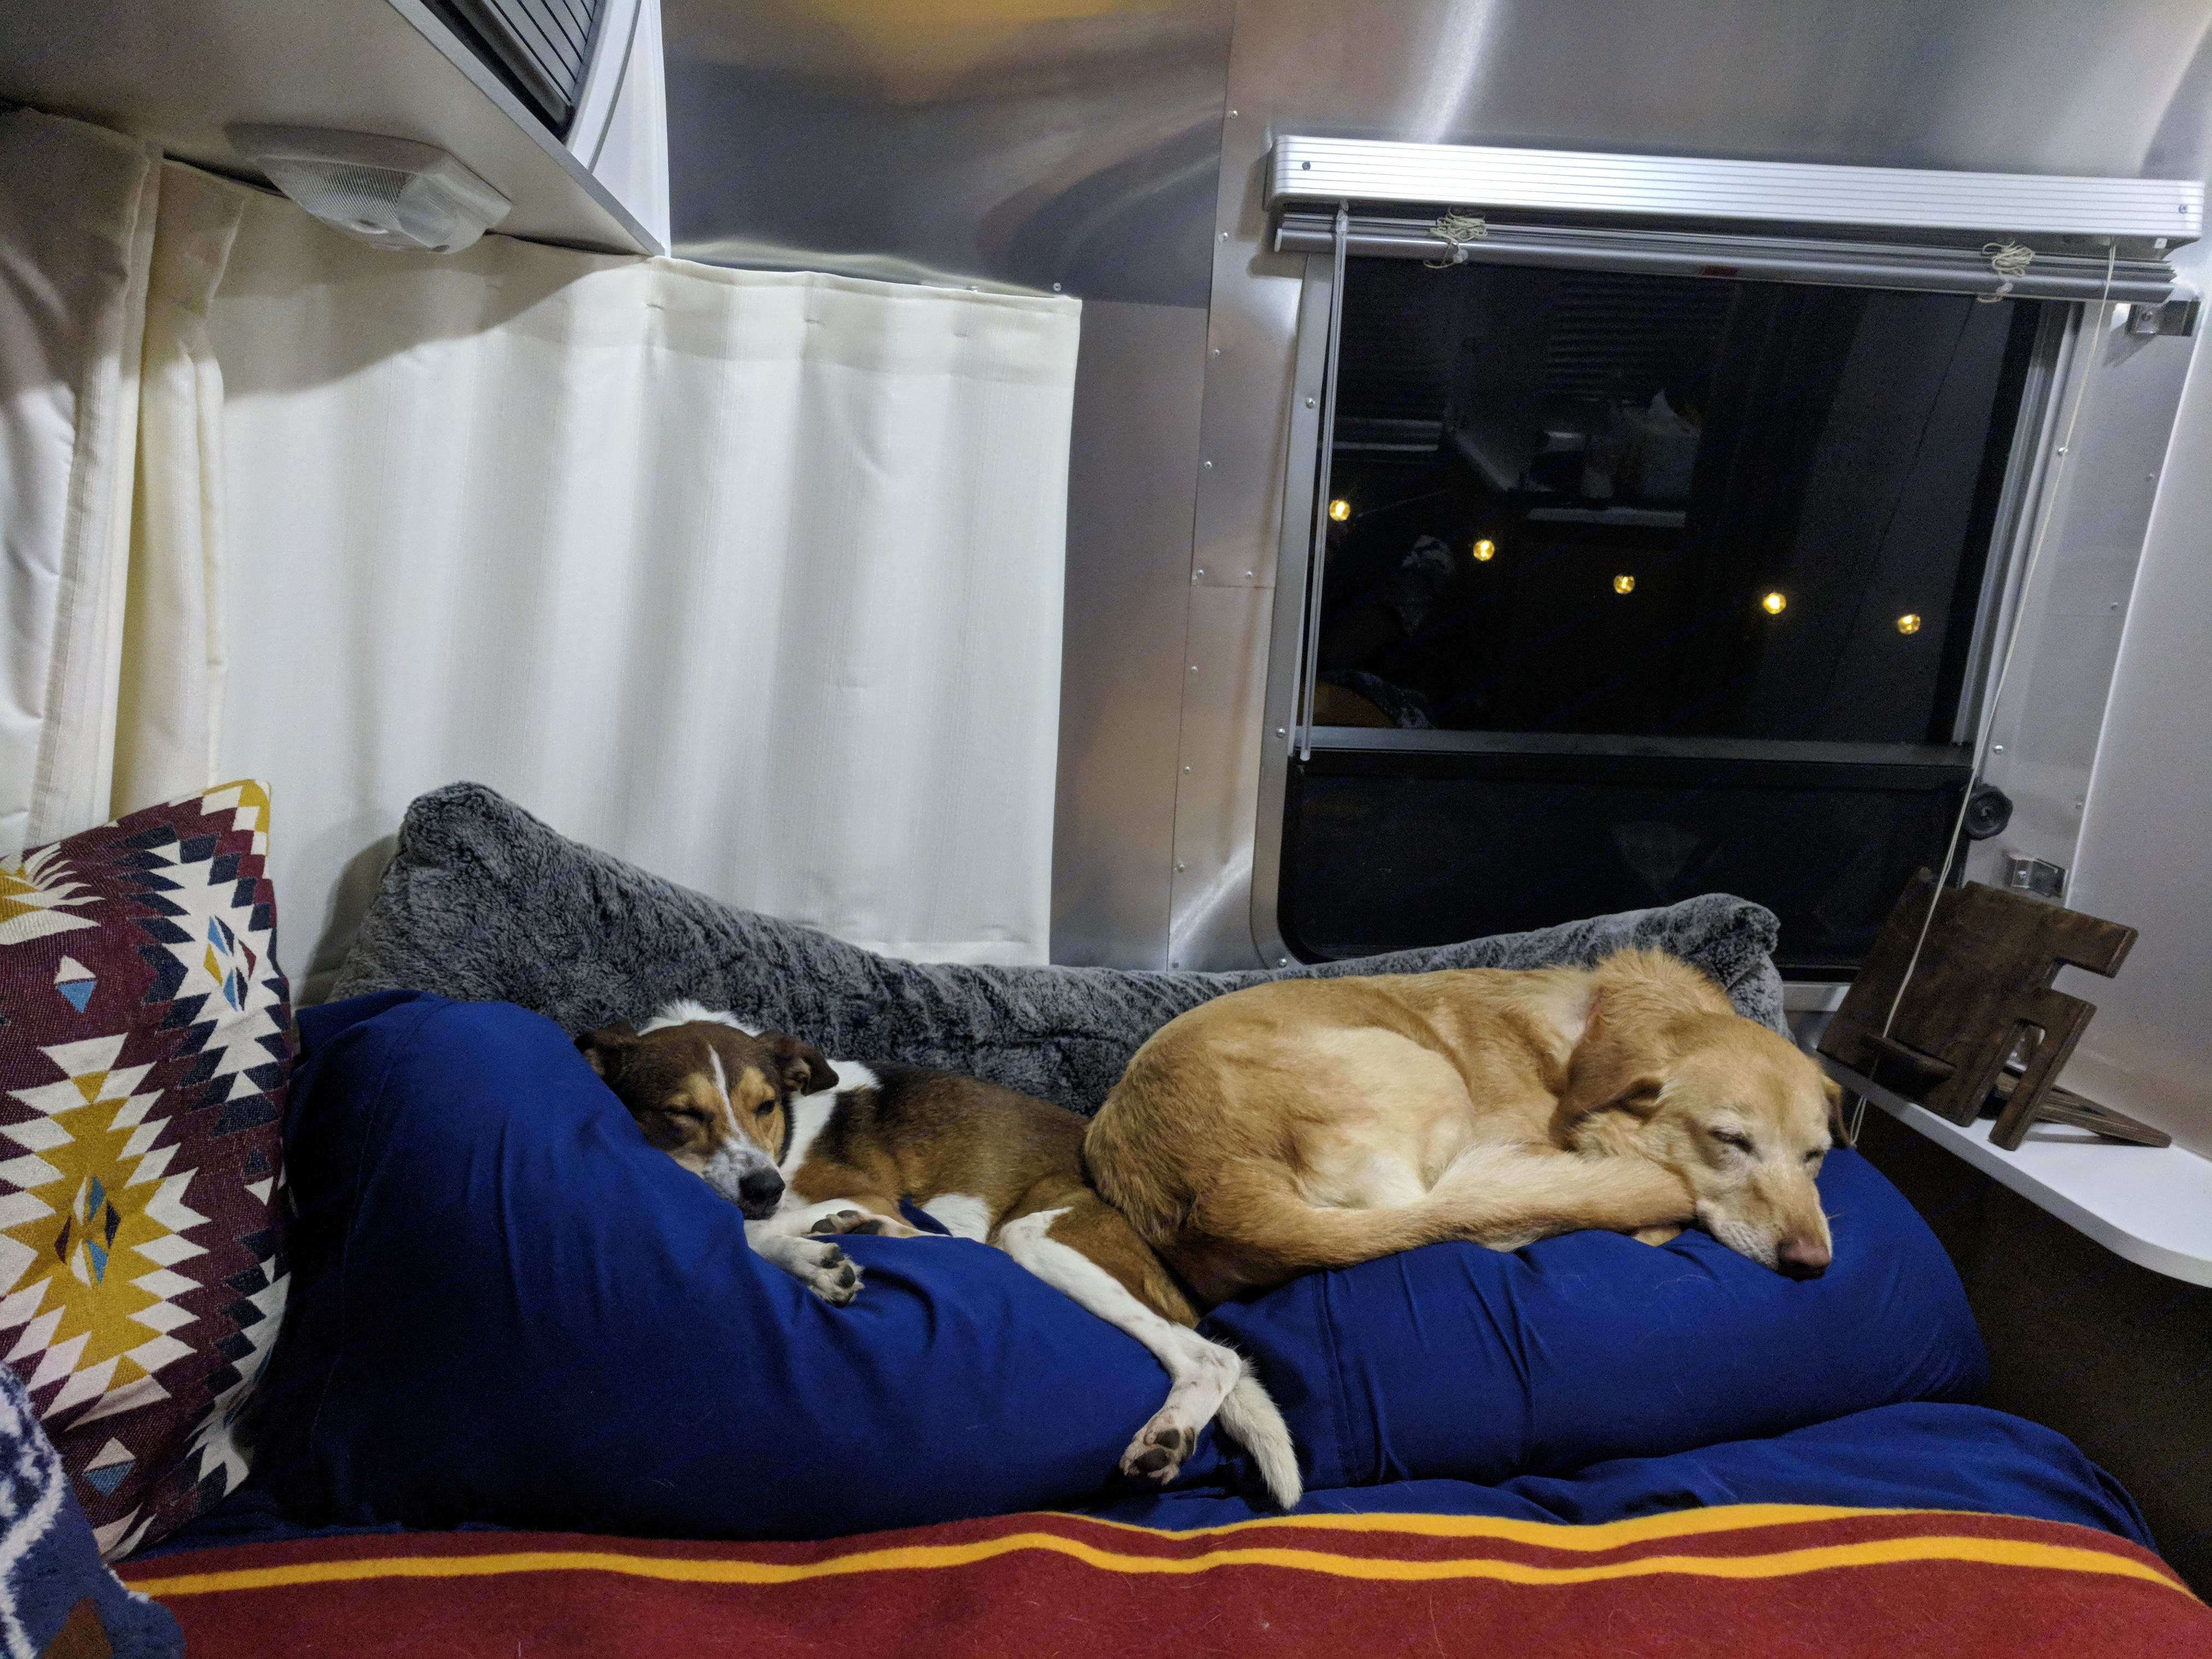 The Airstream is dog friendly. Here are our two pups enjoying the bed after a long day of adventures!. Airstream Sport 2014